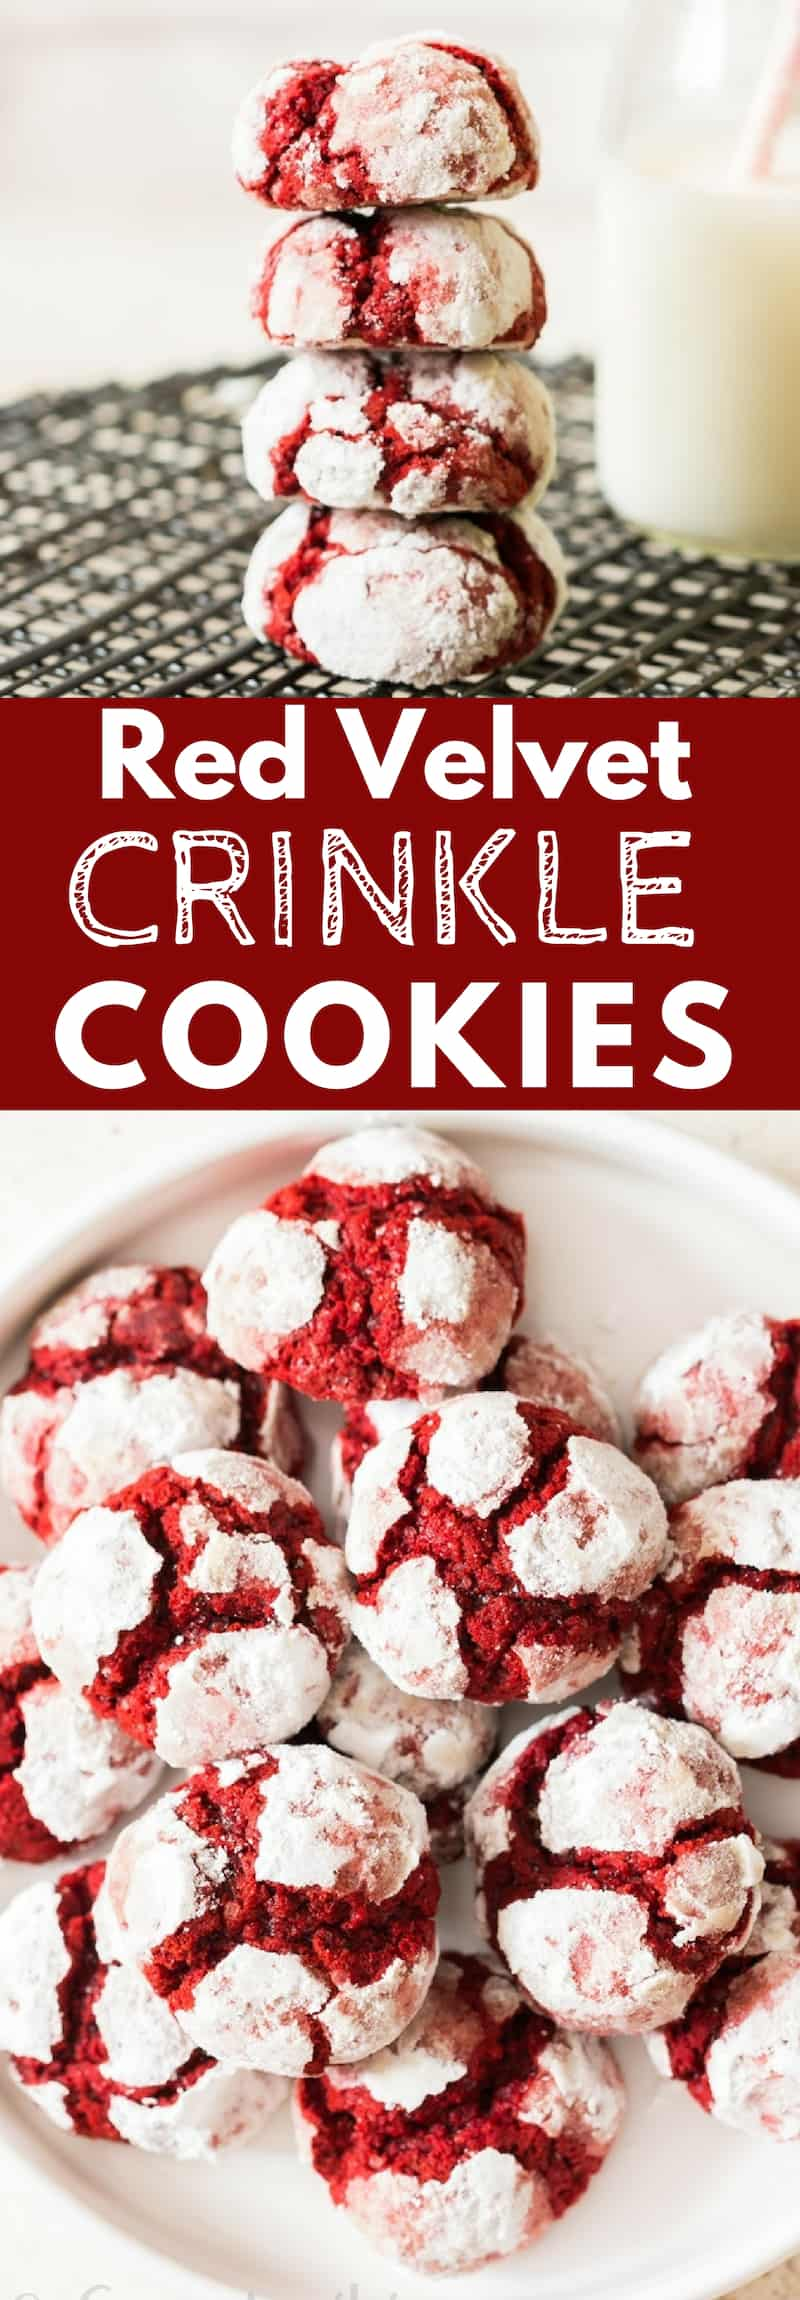 red velvet crinkle cookies with text overlay